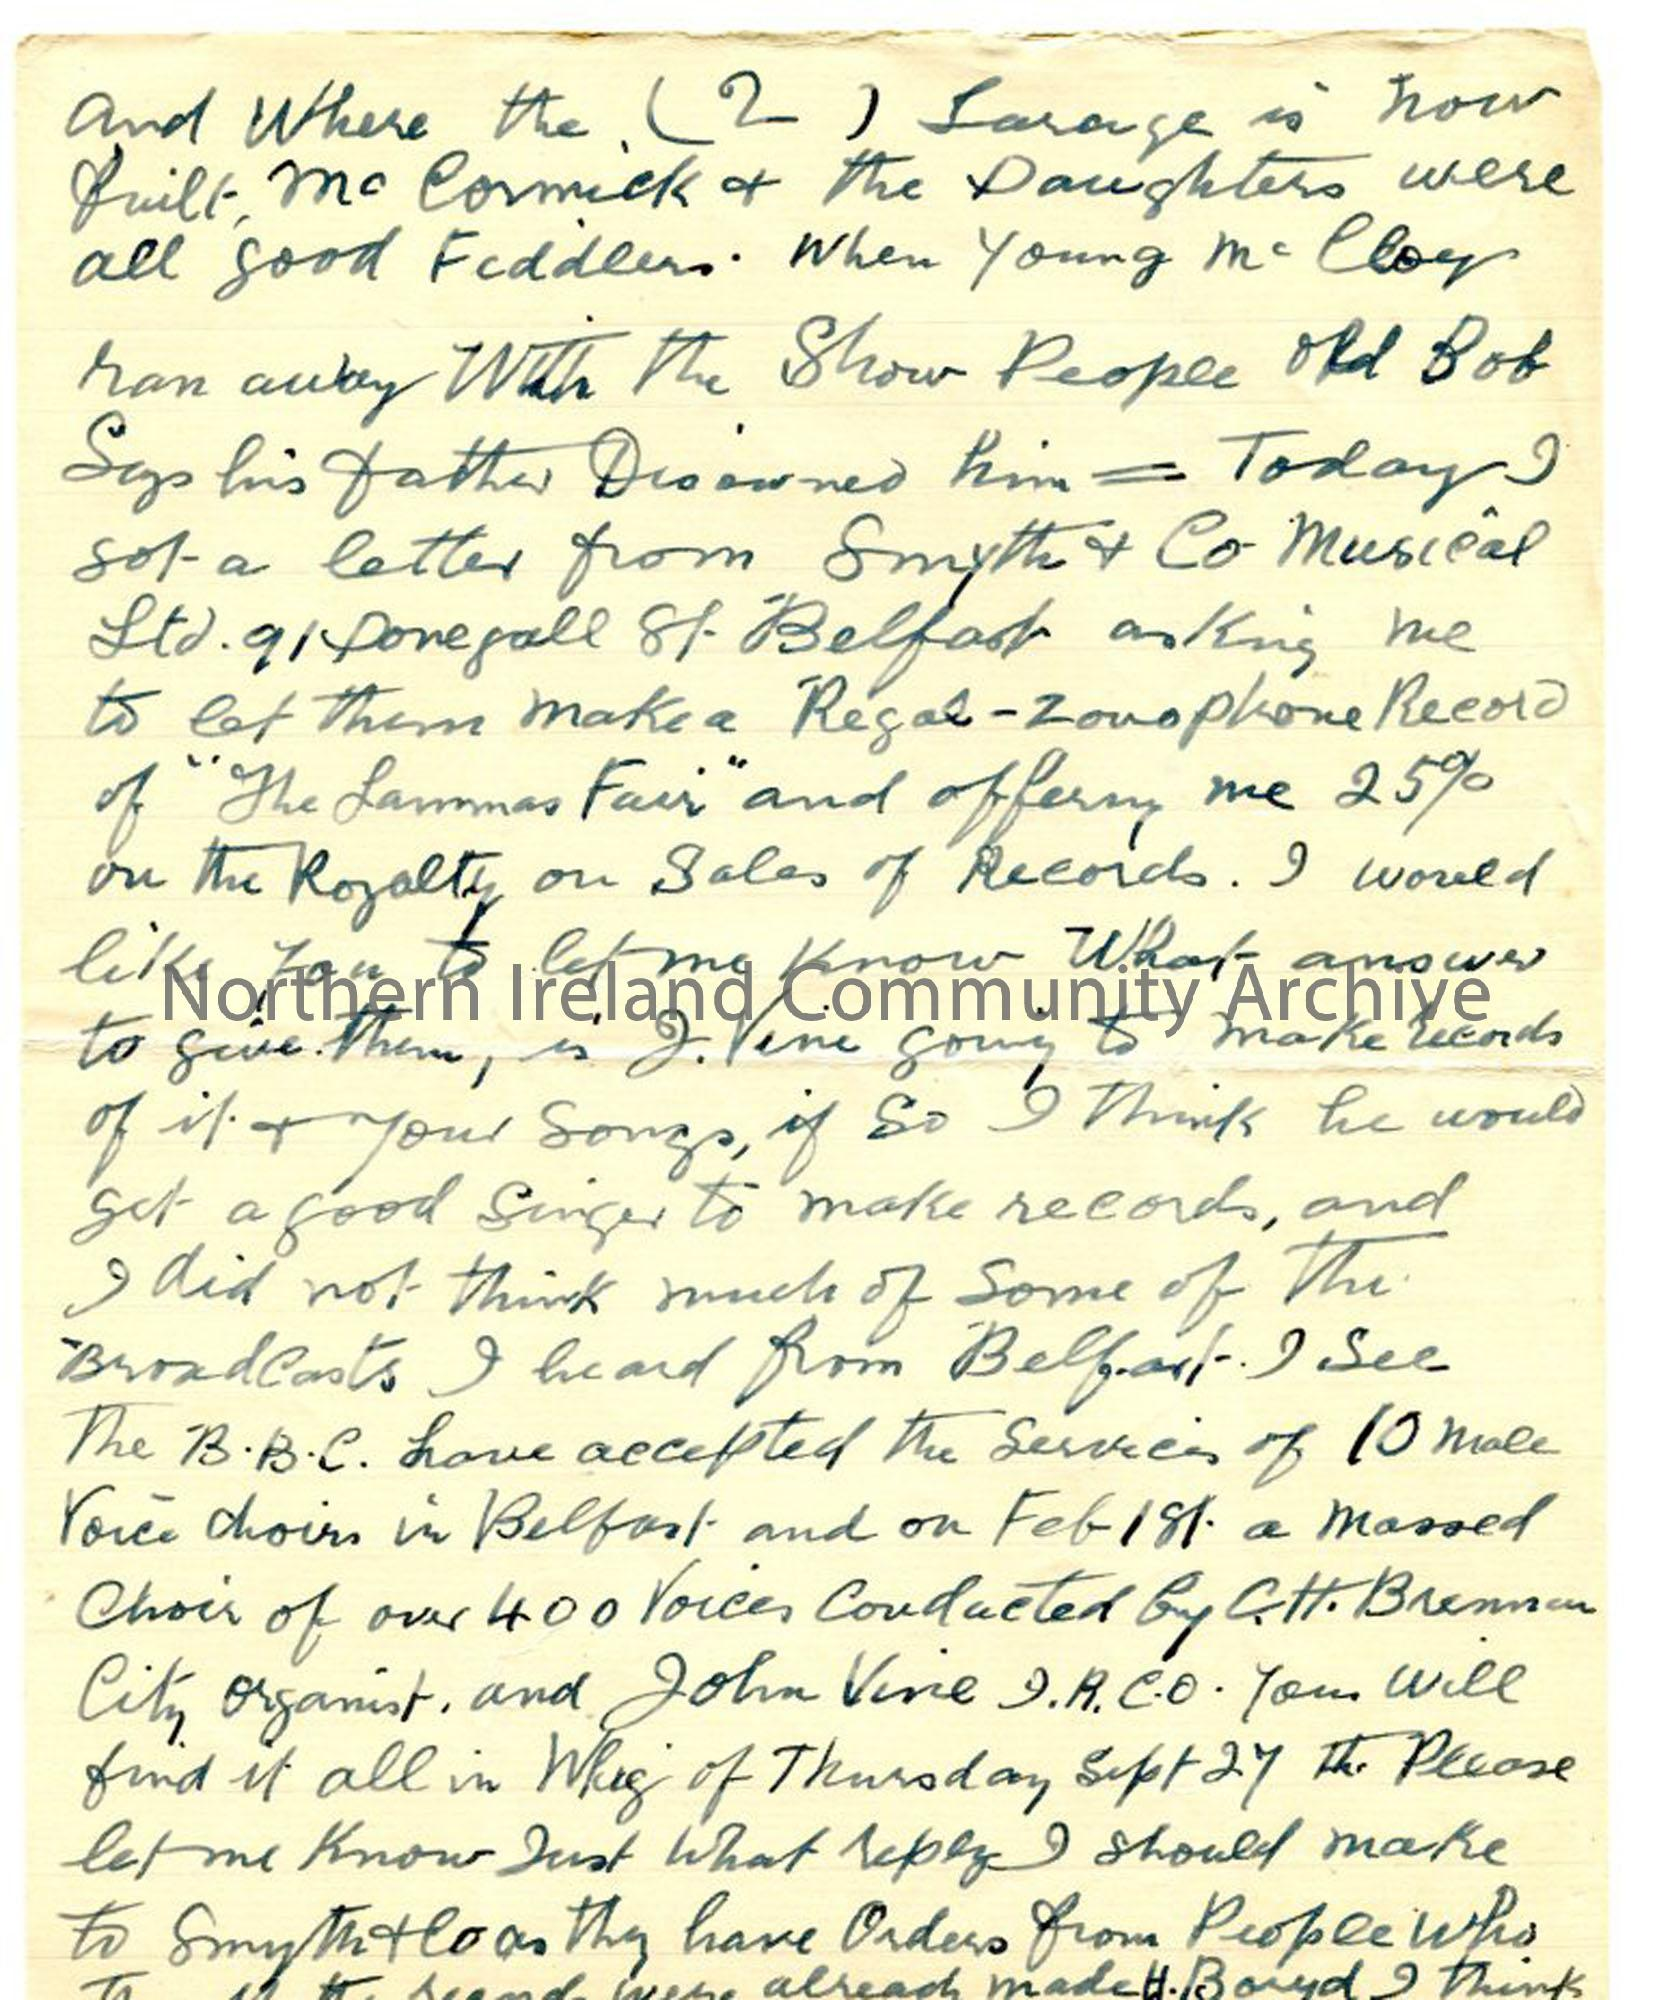 Letter, page 2 of 2, from John MacAulay, 28.9.1934